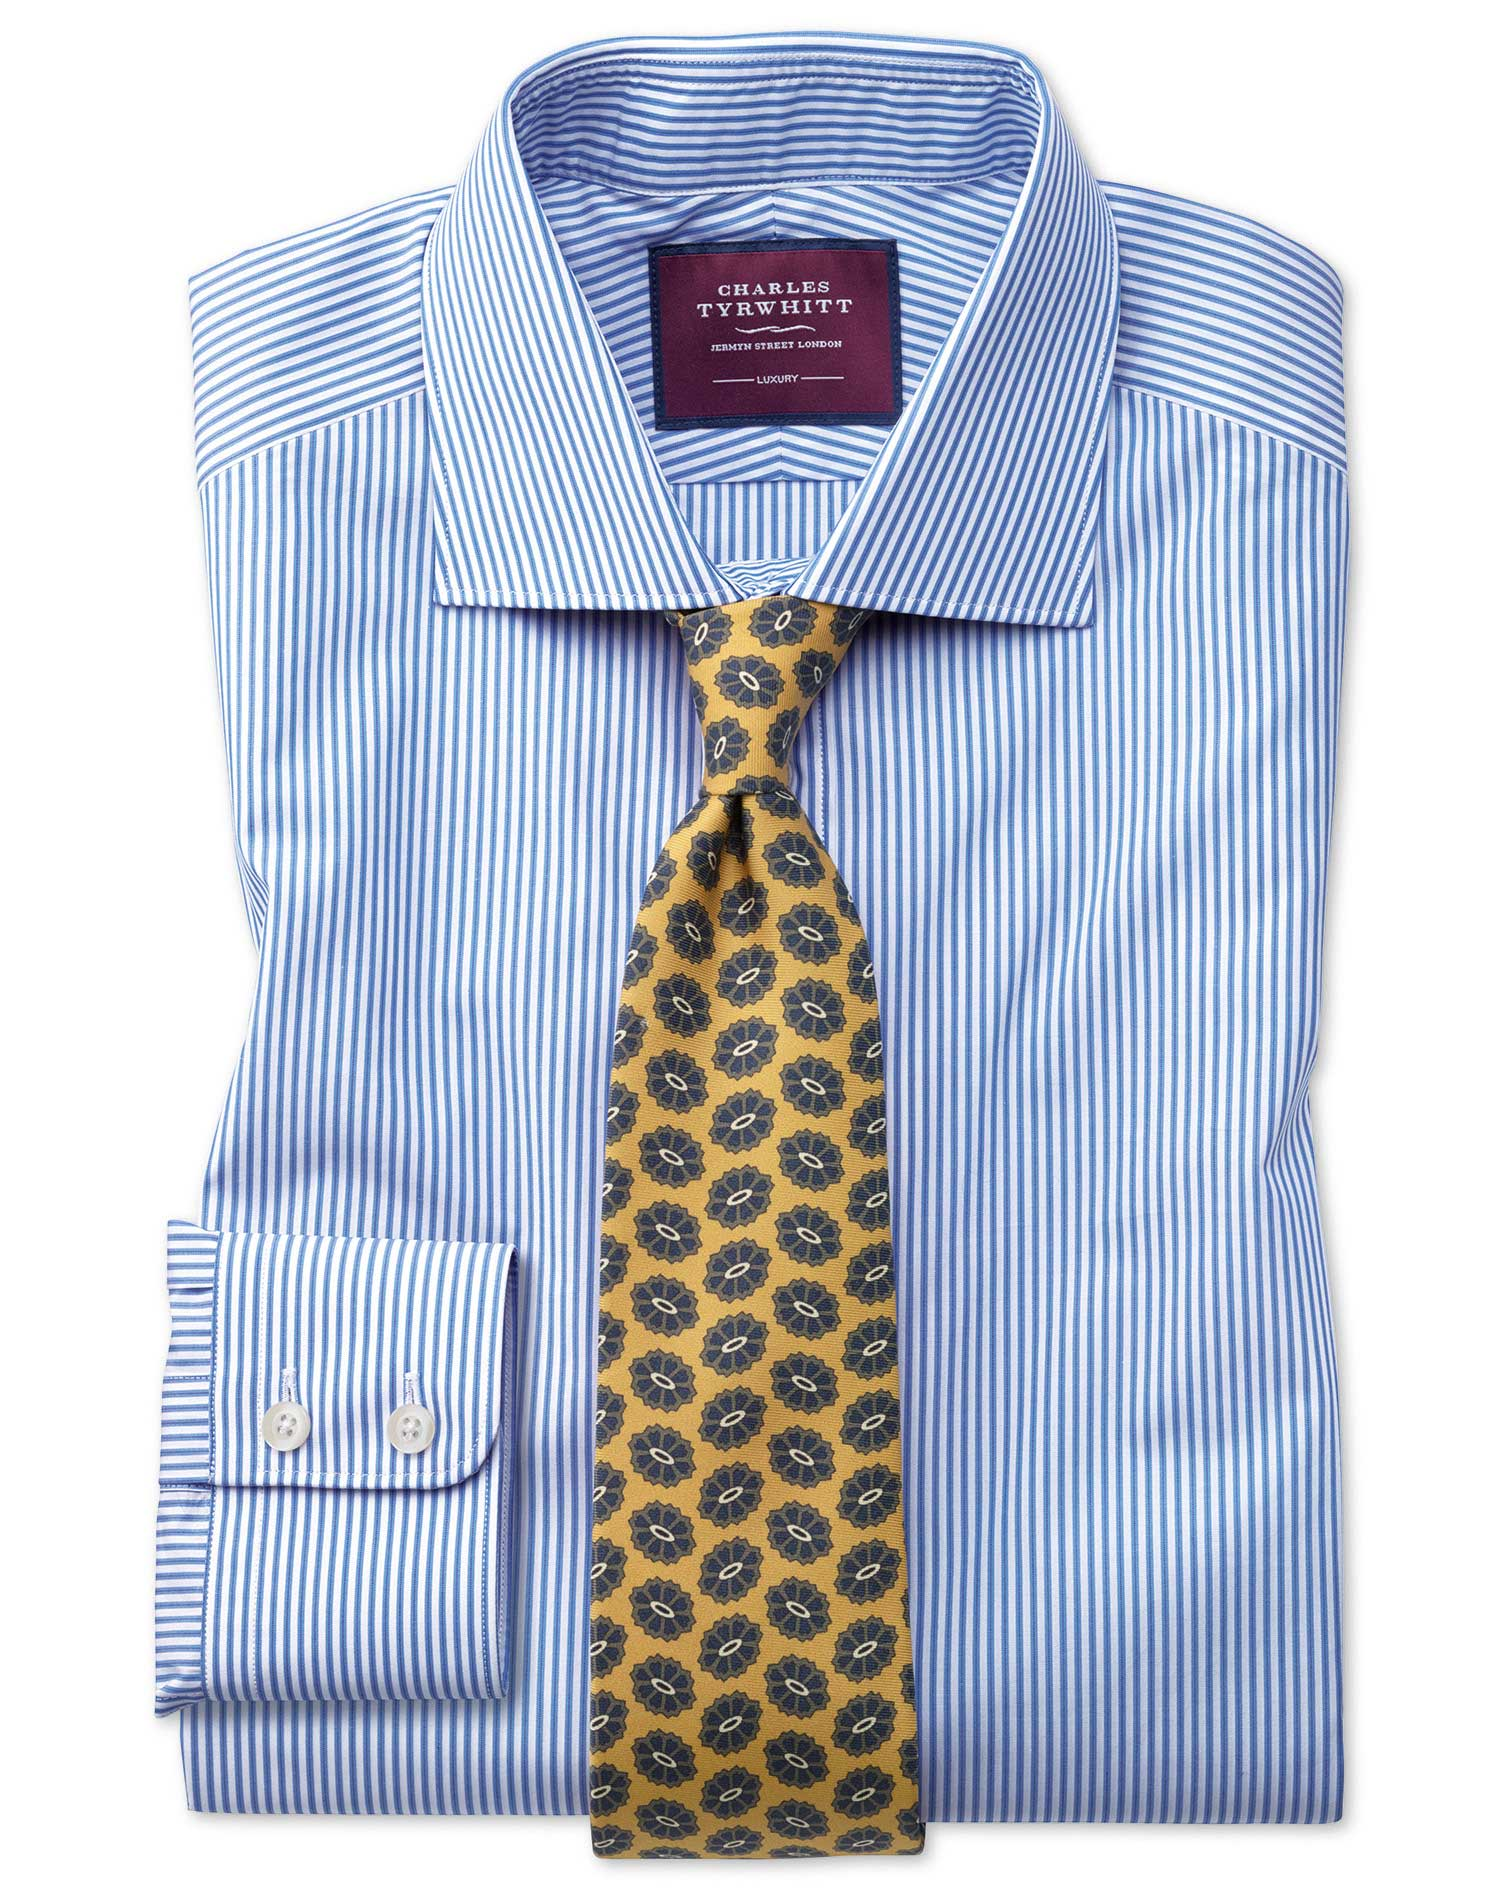 Classic Fit Blue Stripe Luxury Egyptian Cotton Formal Shirt Single Cuff Size 15.5/35 by Charles Tyrw